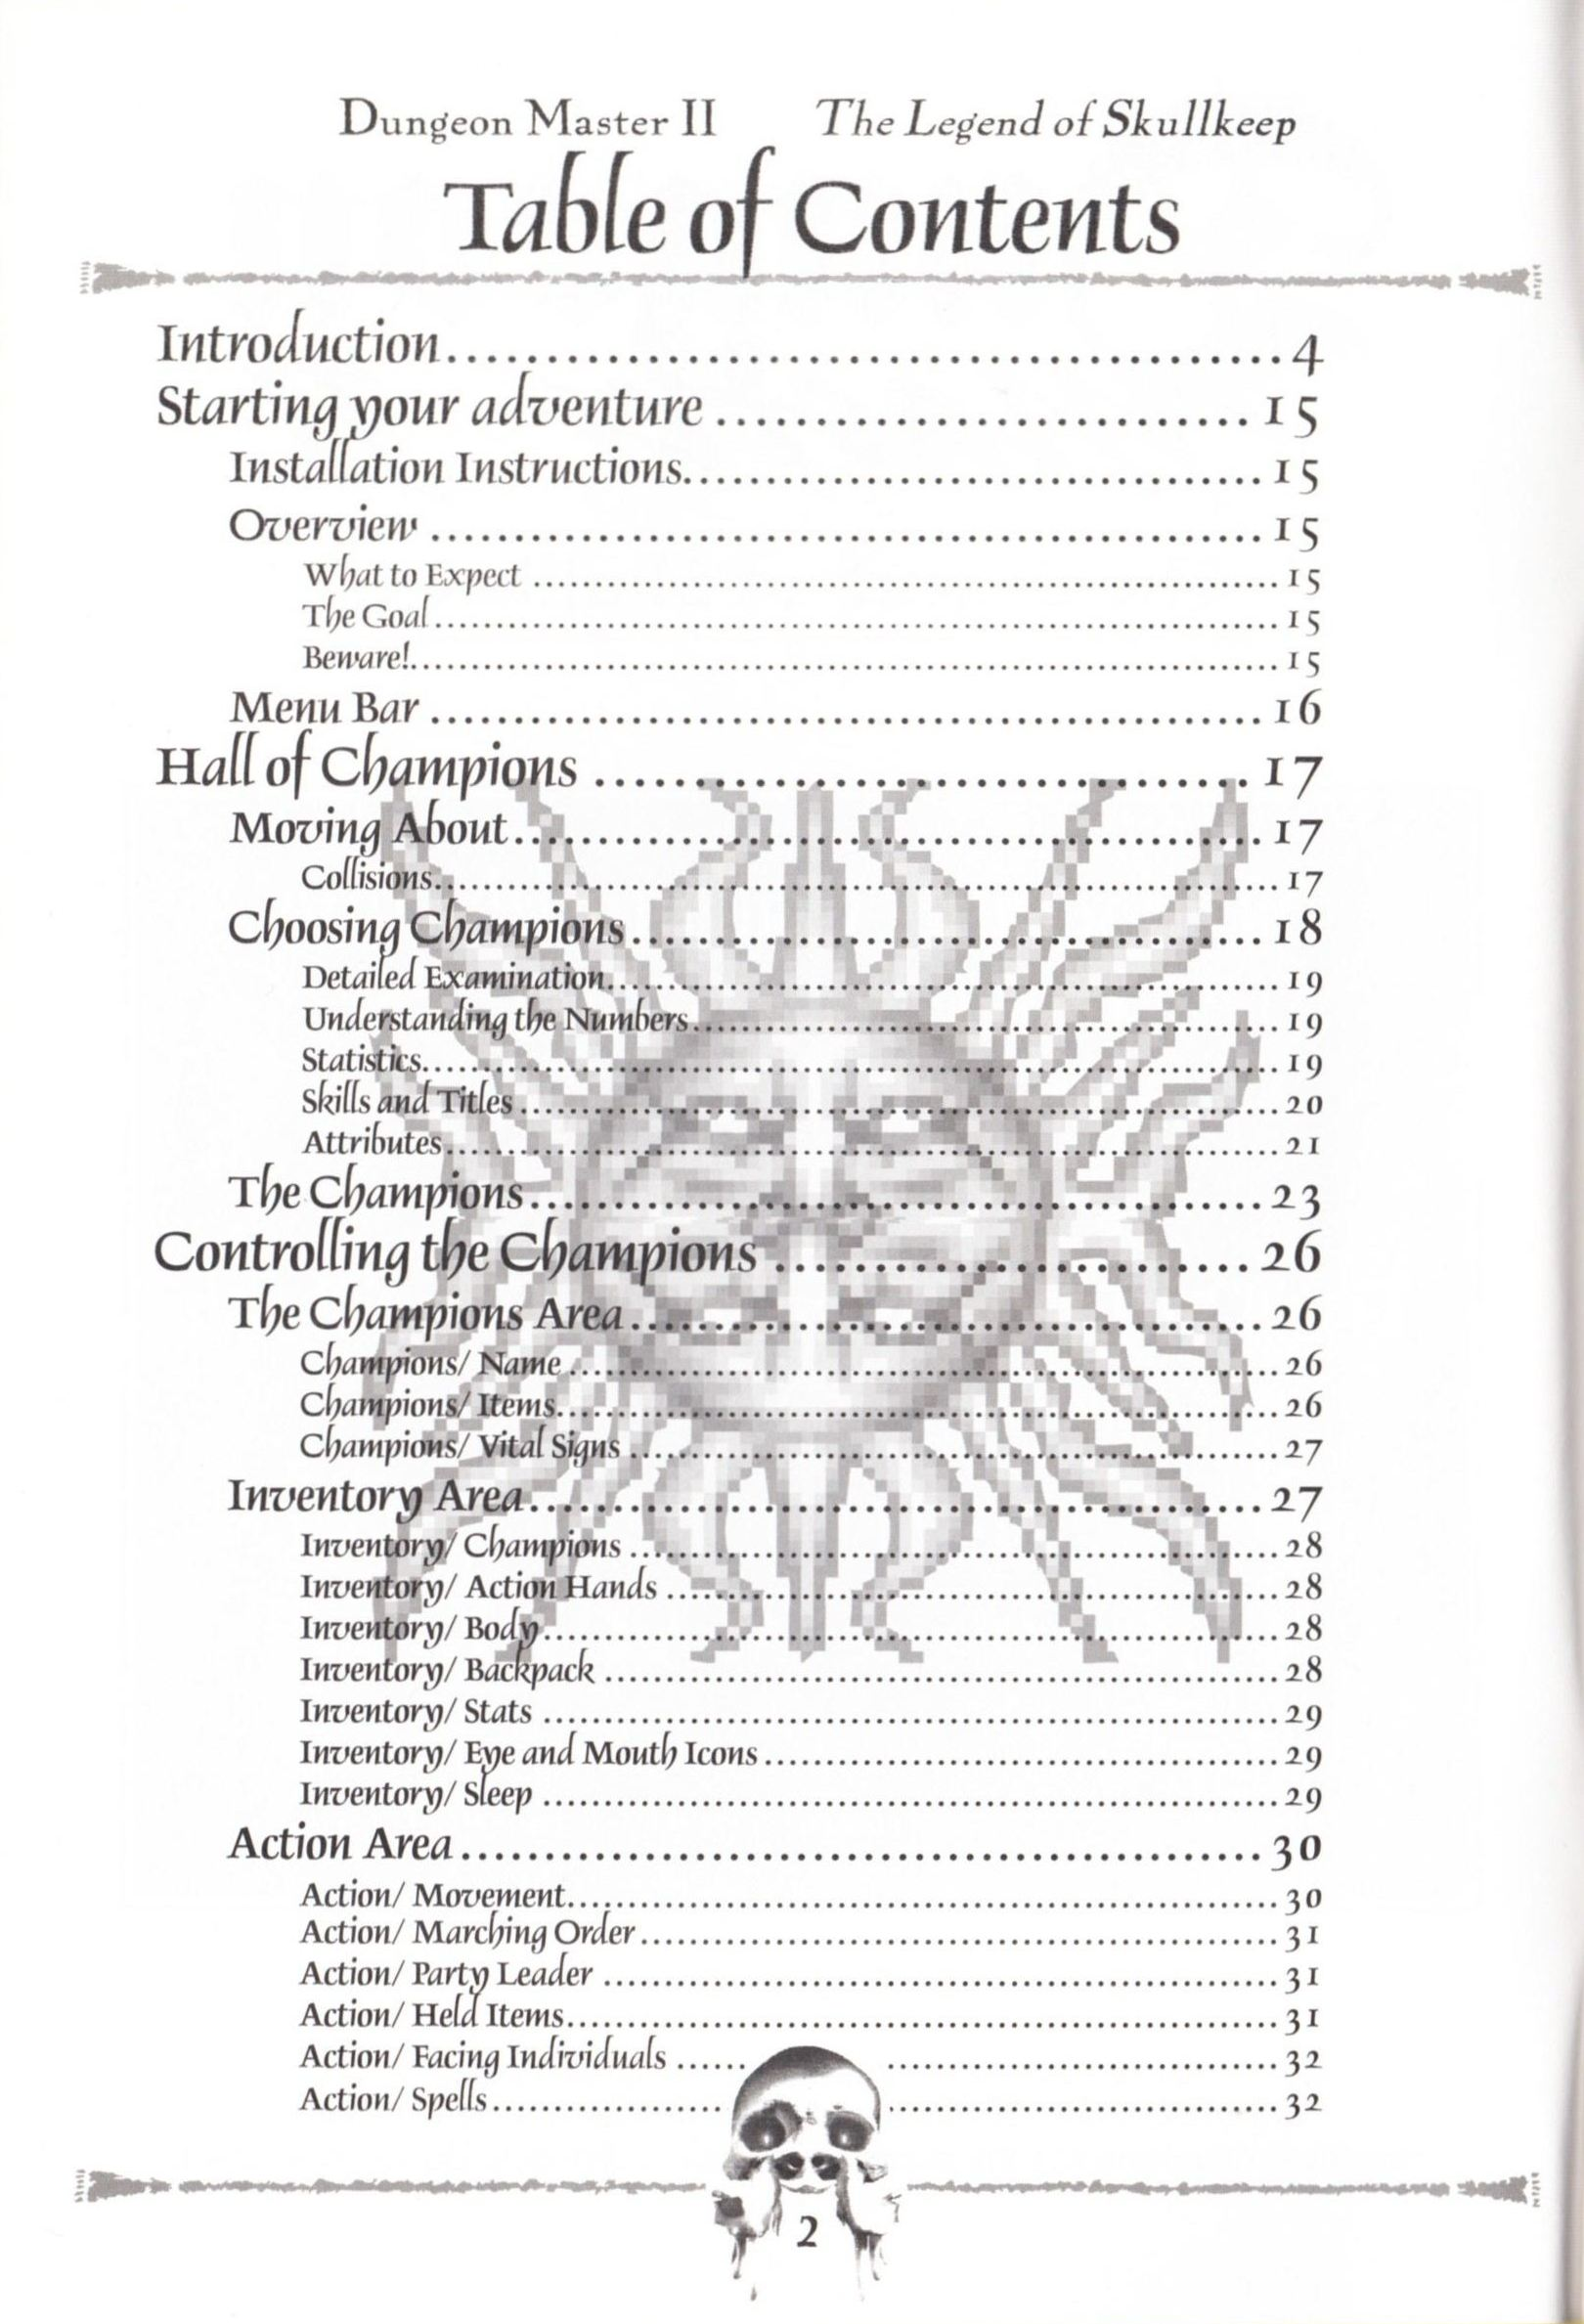 Game - Dungeon Master II - US - Macintosh - Manual - Page 004 - Scan